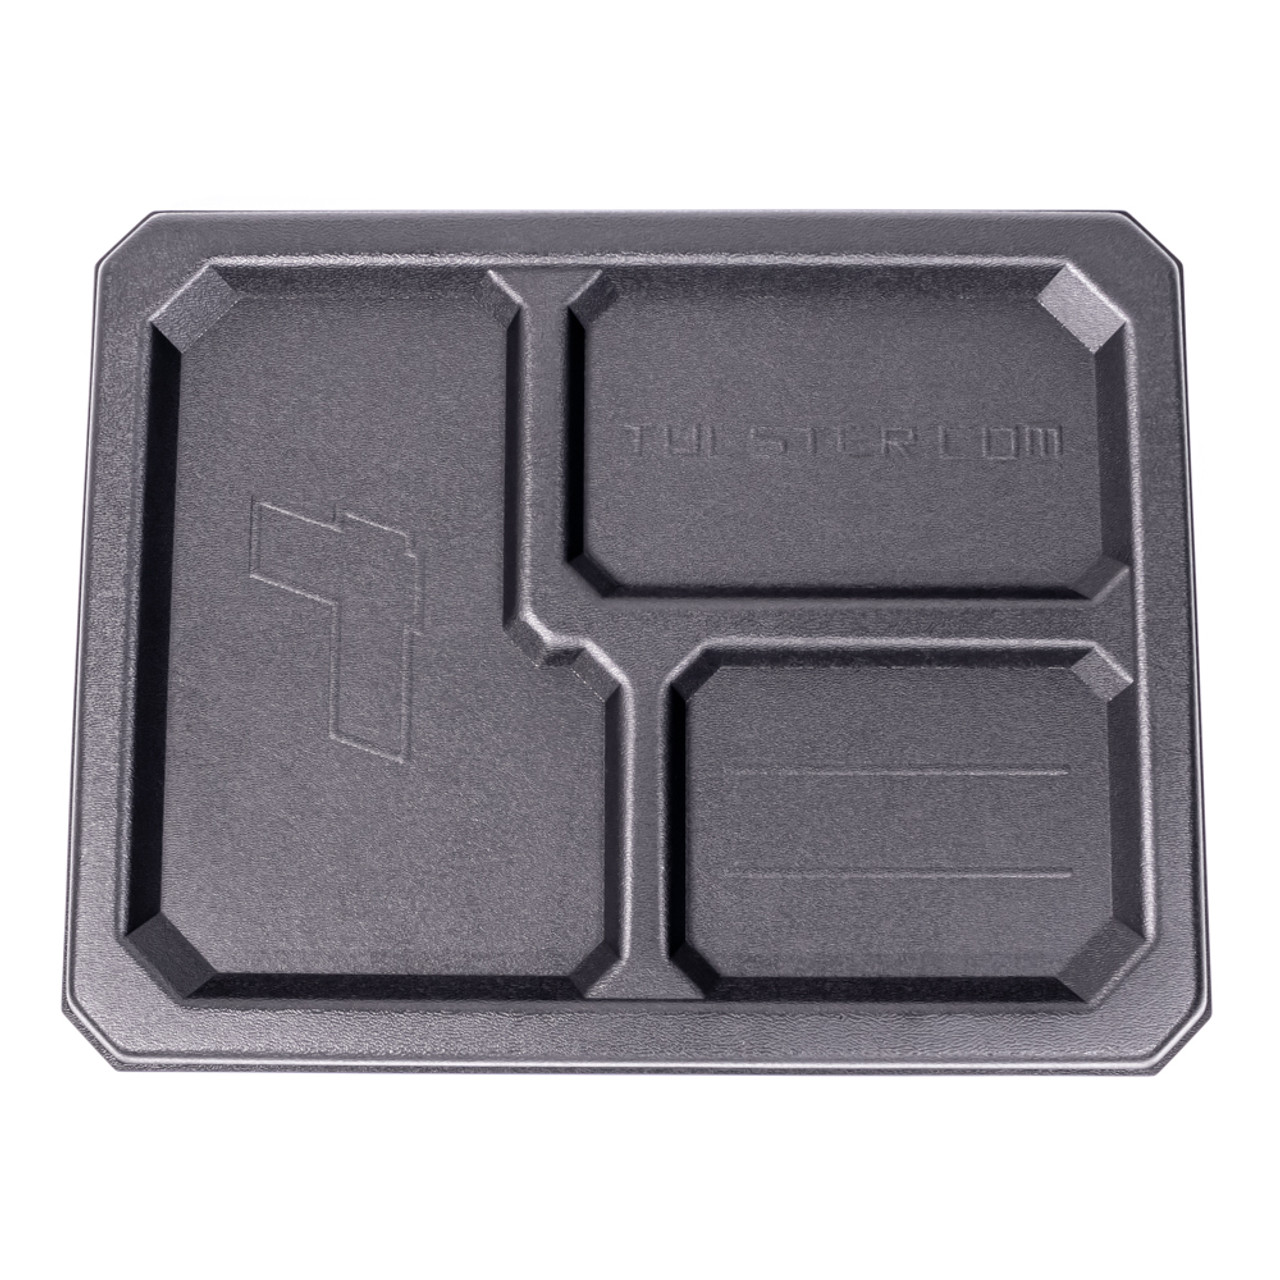 The Delta Tray - Black, Large